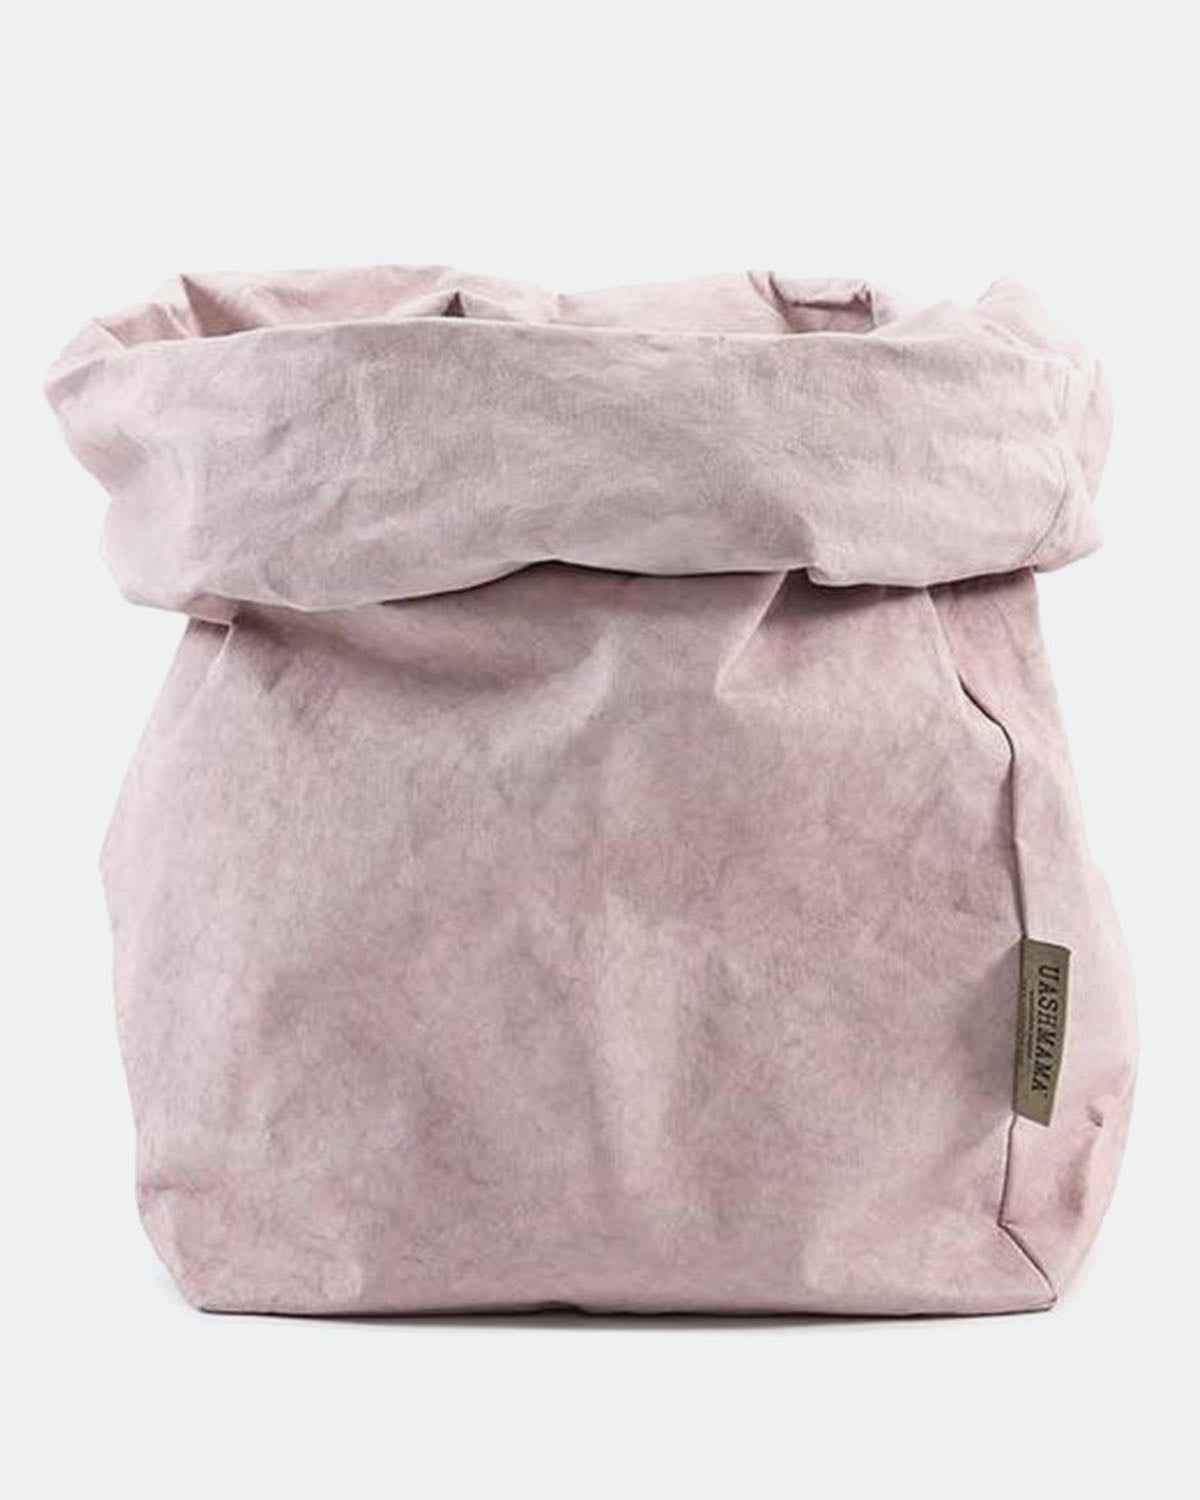 Uashmama Washable Paper Bag - Small